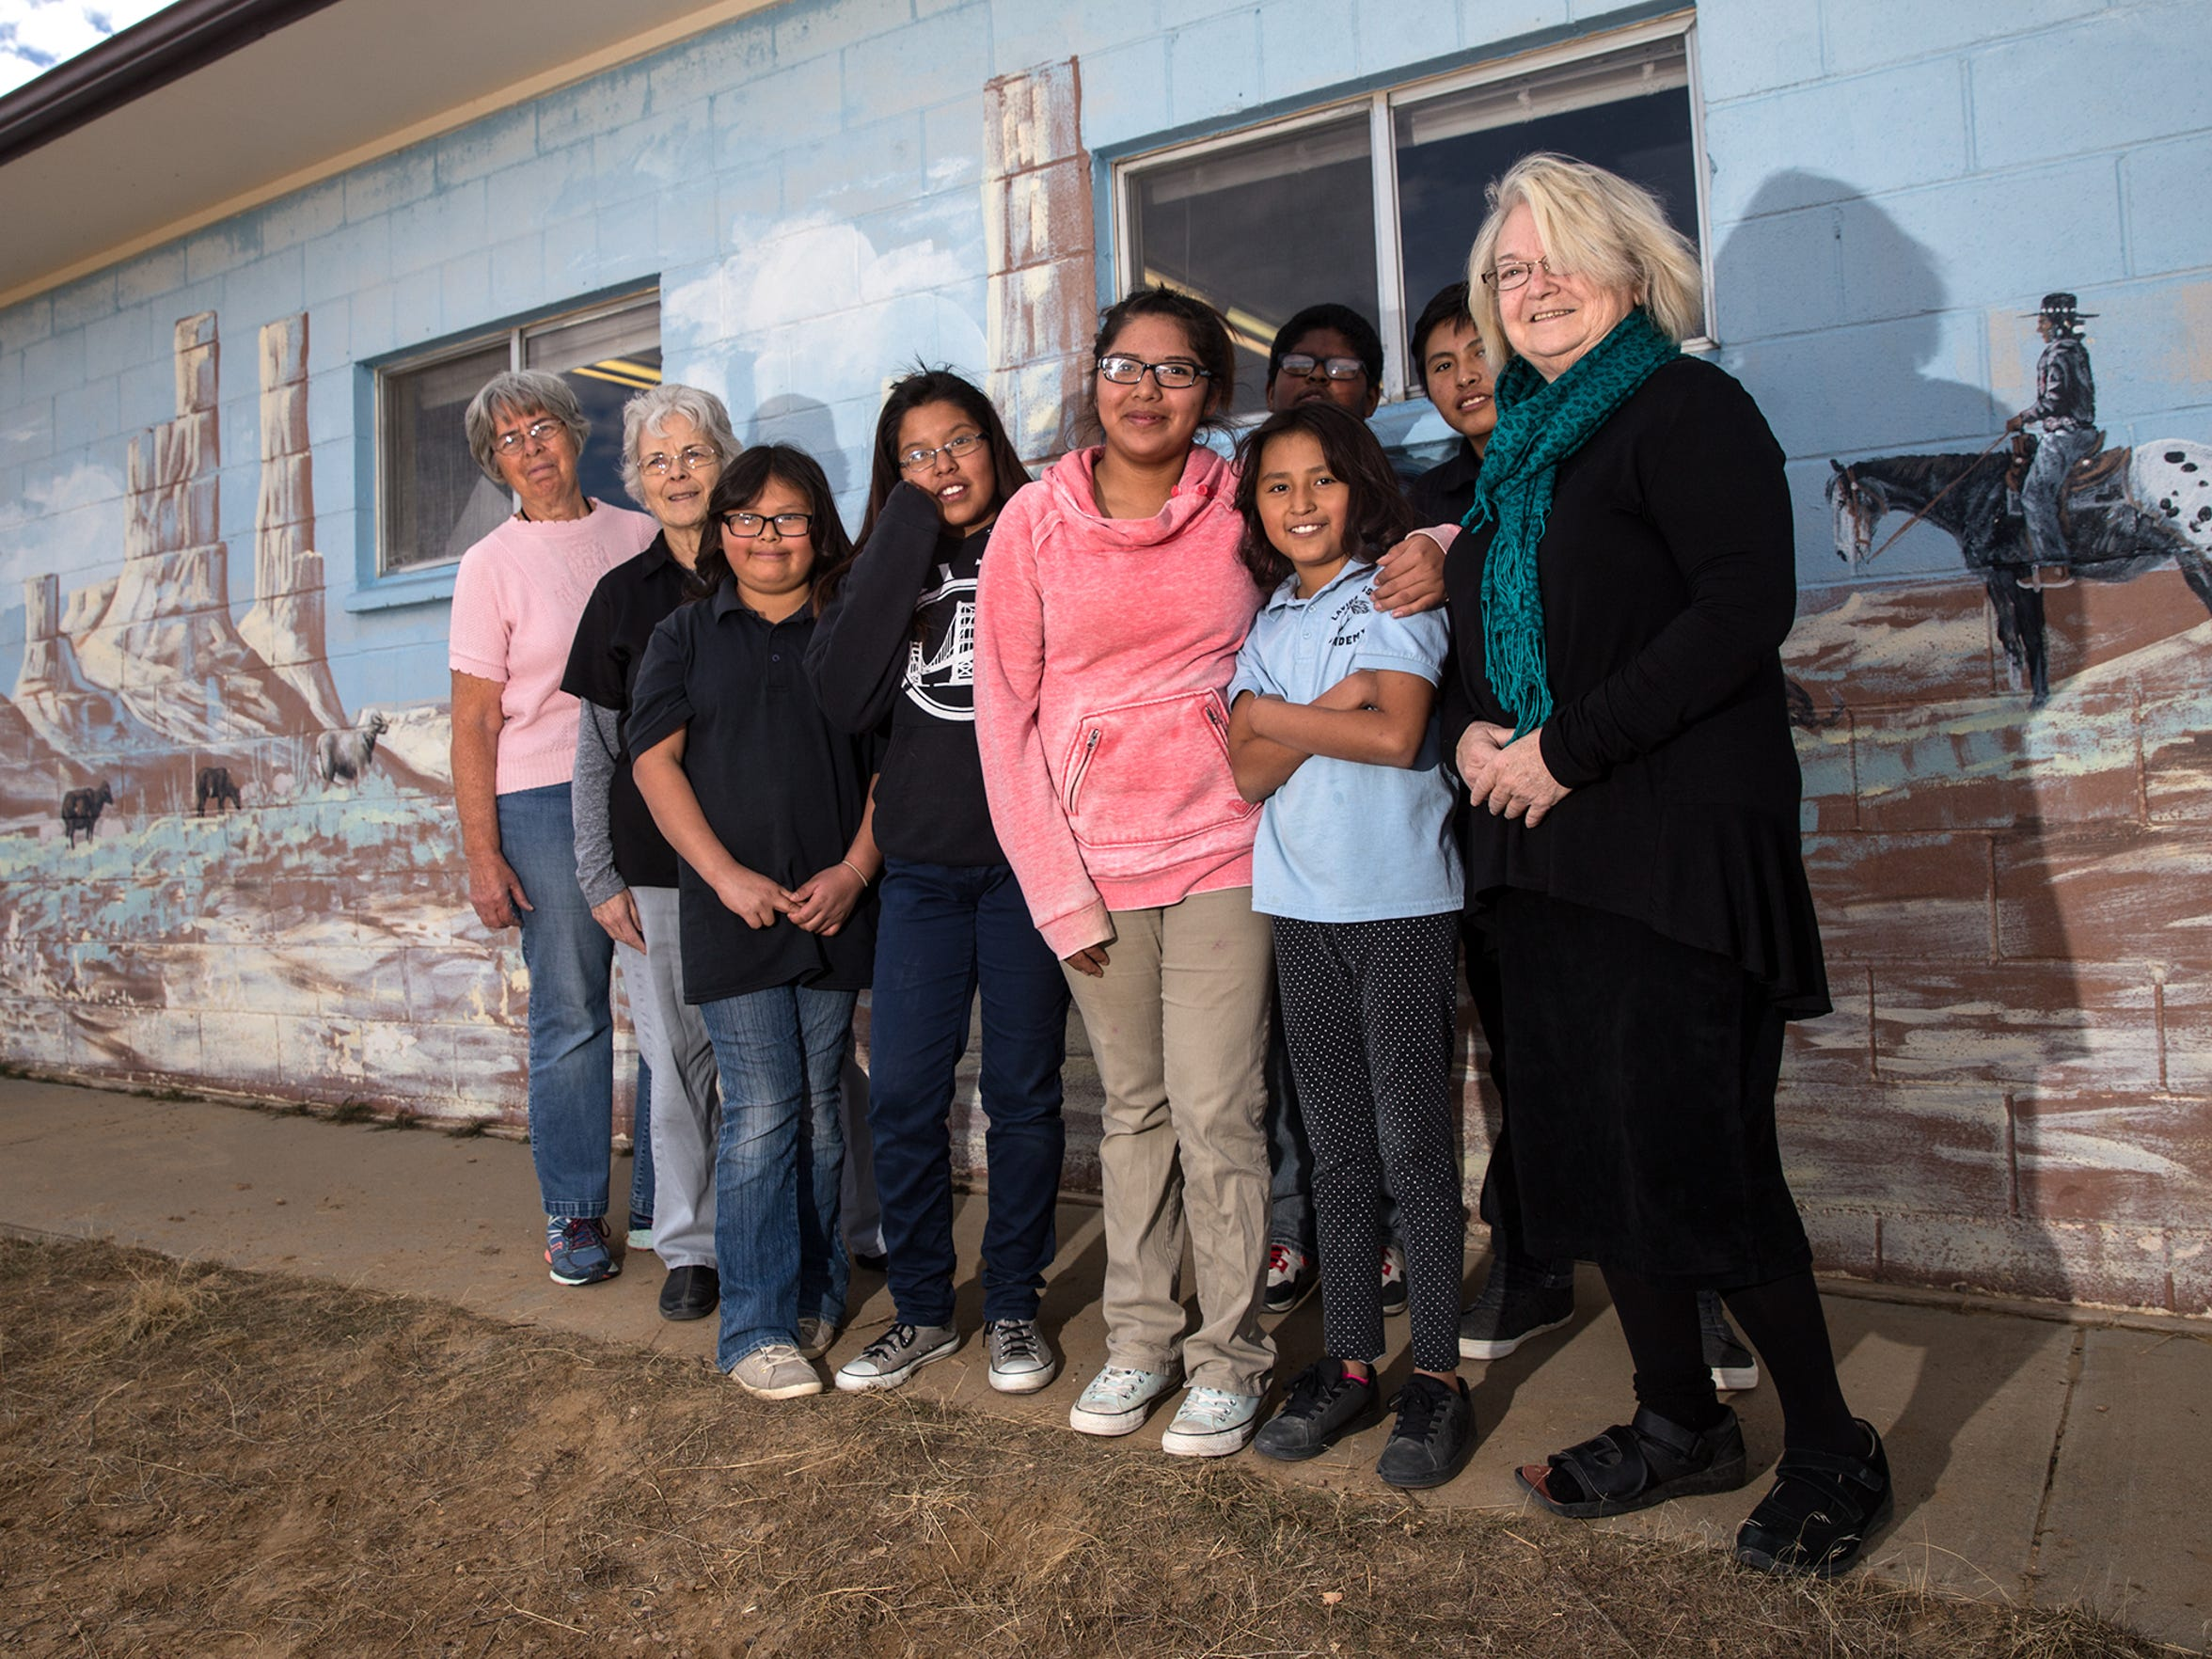 Claire Wilson James, right, poses with La Vida Mission school staff members and students Friday at the residential school south of Farmington.